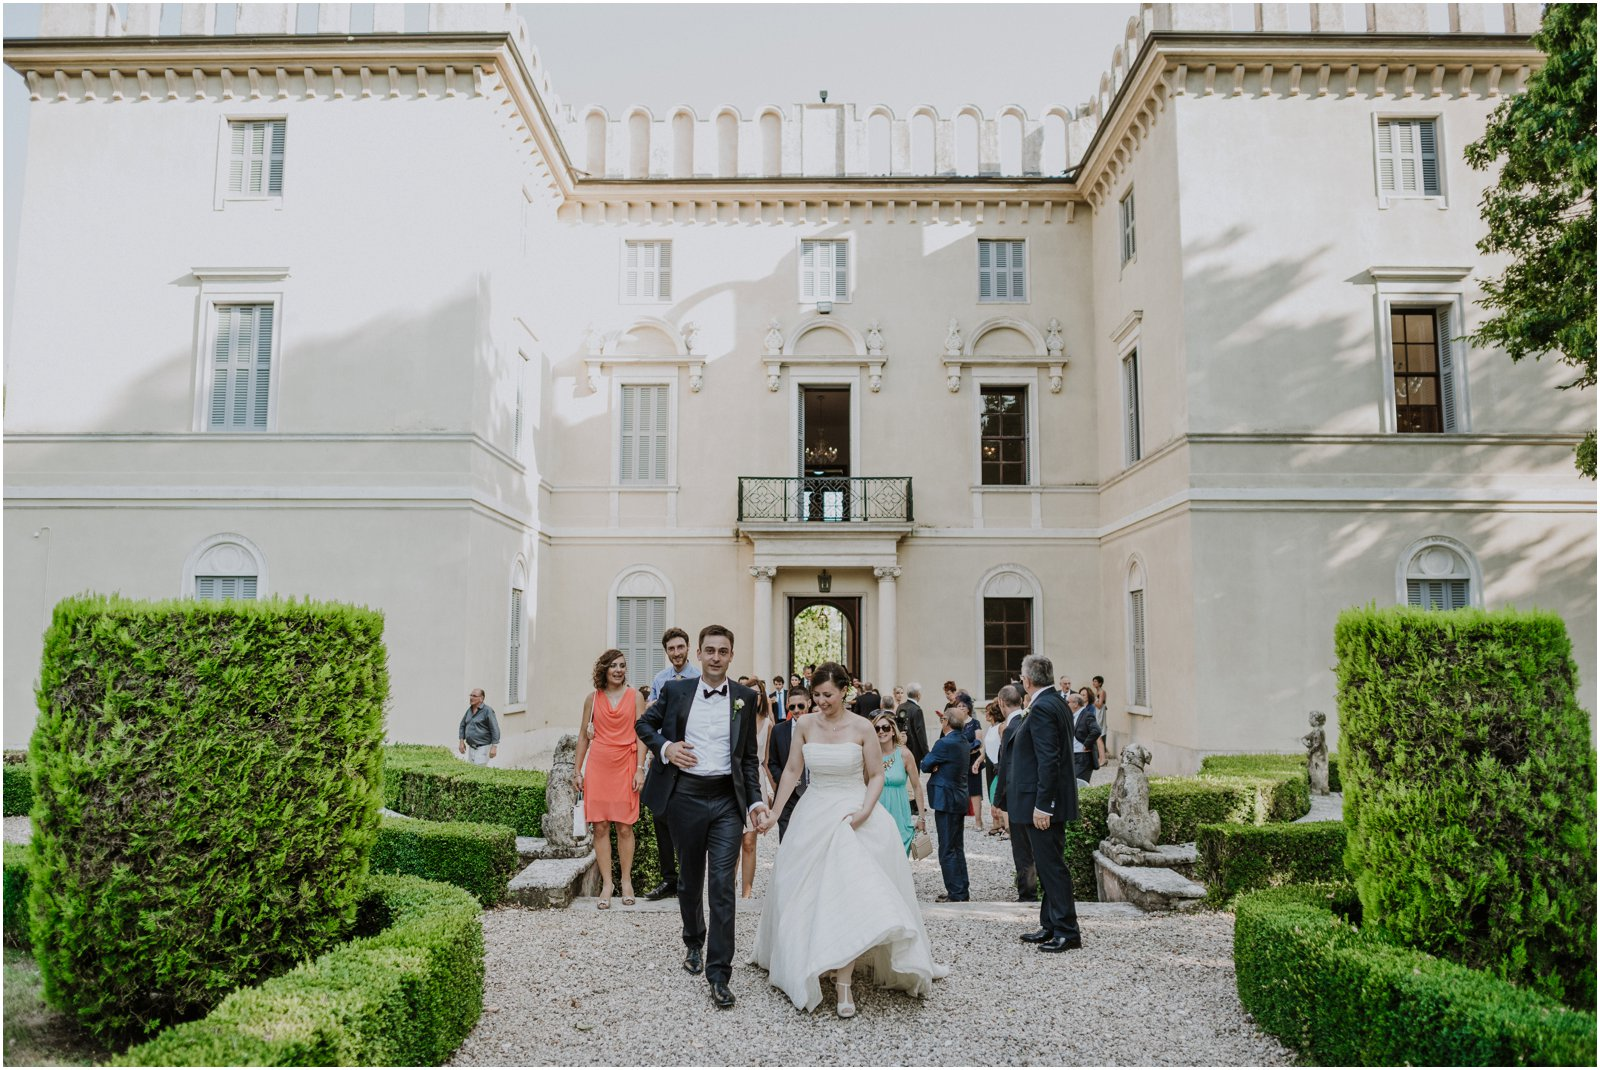 veronasposi foto e video matrimonio verona_0576